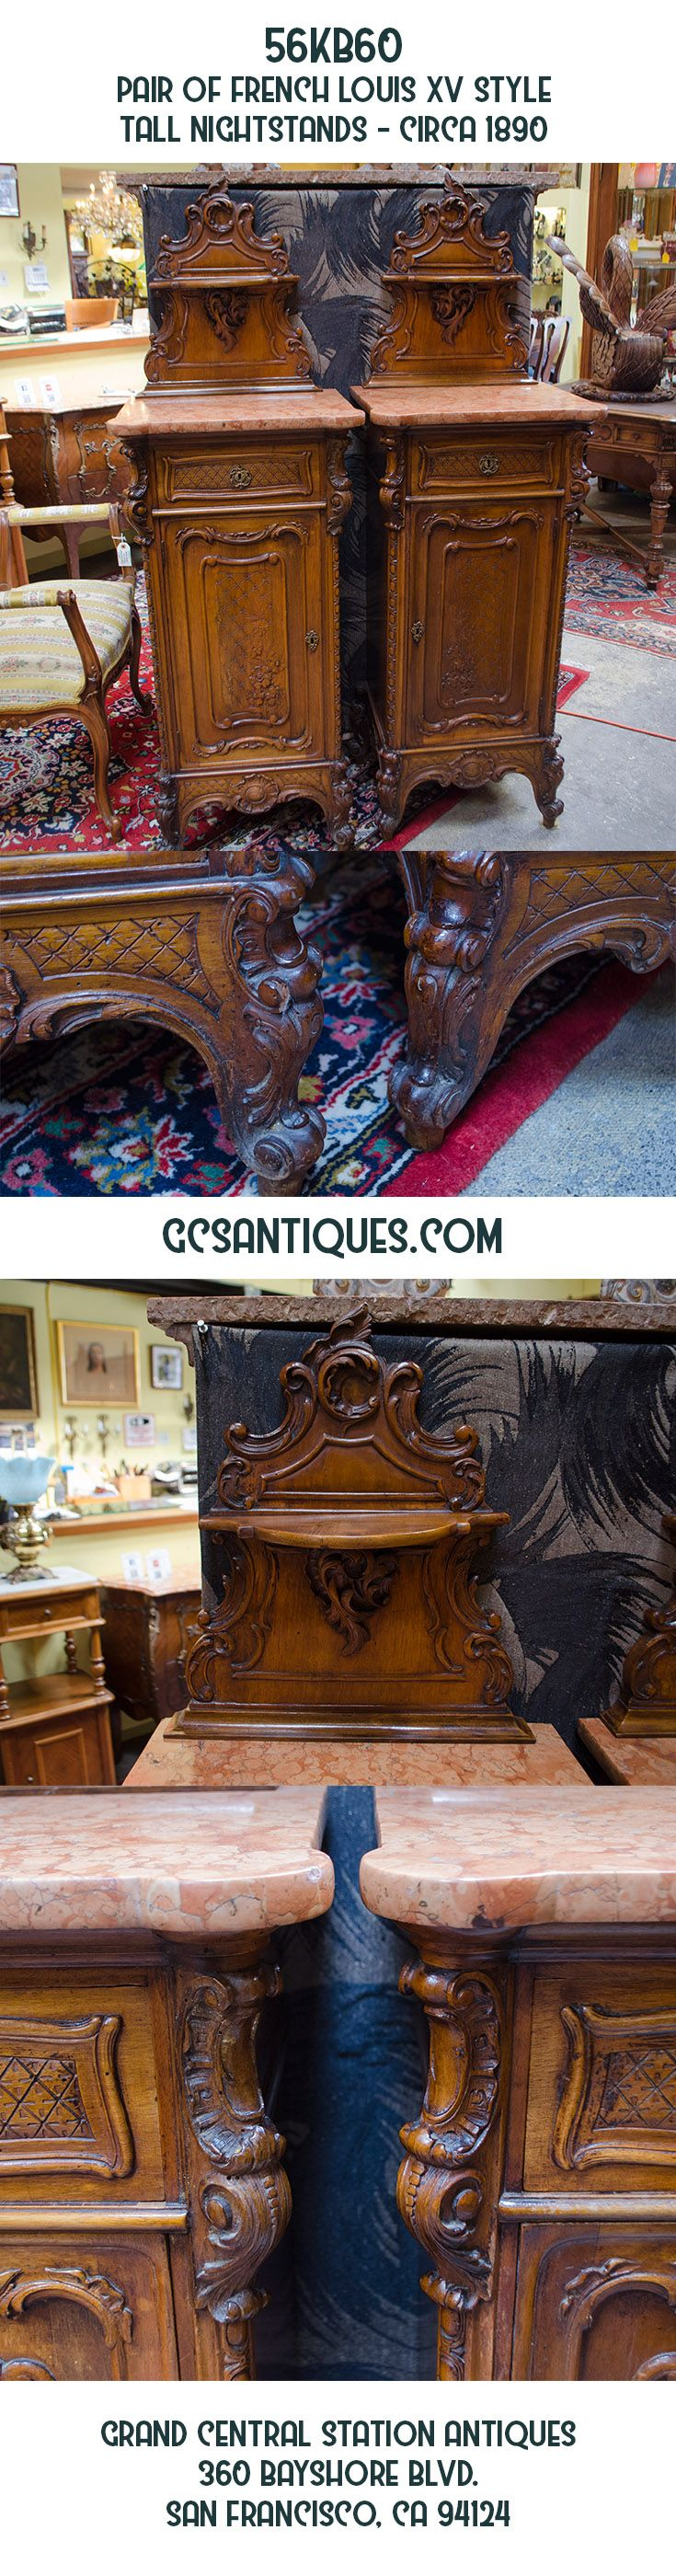 56KB60 - Pair of French Louis XV Style Tall Nightstands - circa 1890 www.GCSAntiques.com